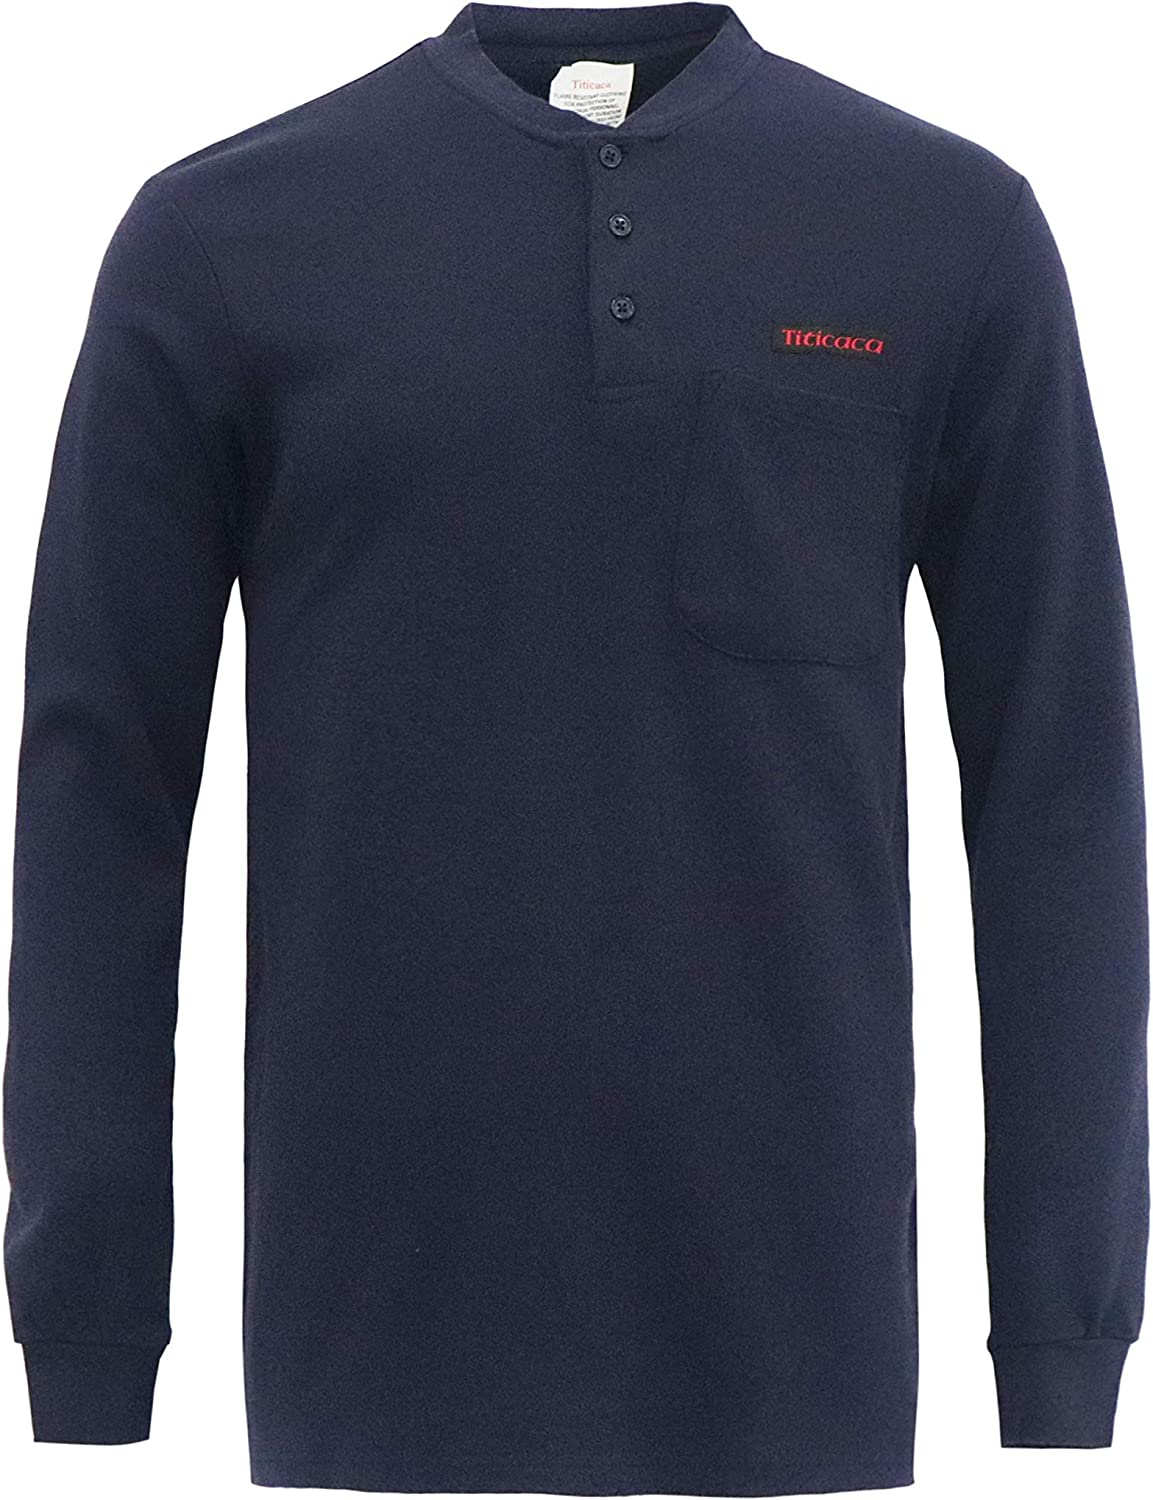 Titicaca Flame Resistant FR 7OZ 100% Sl Long Style Direct stock discount Henley Cotton Max 74% OFF